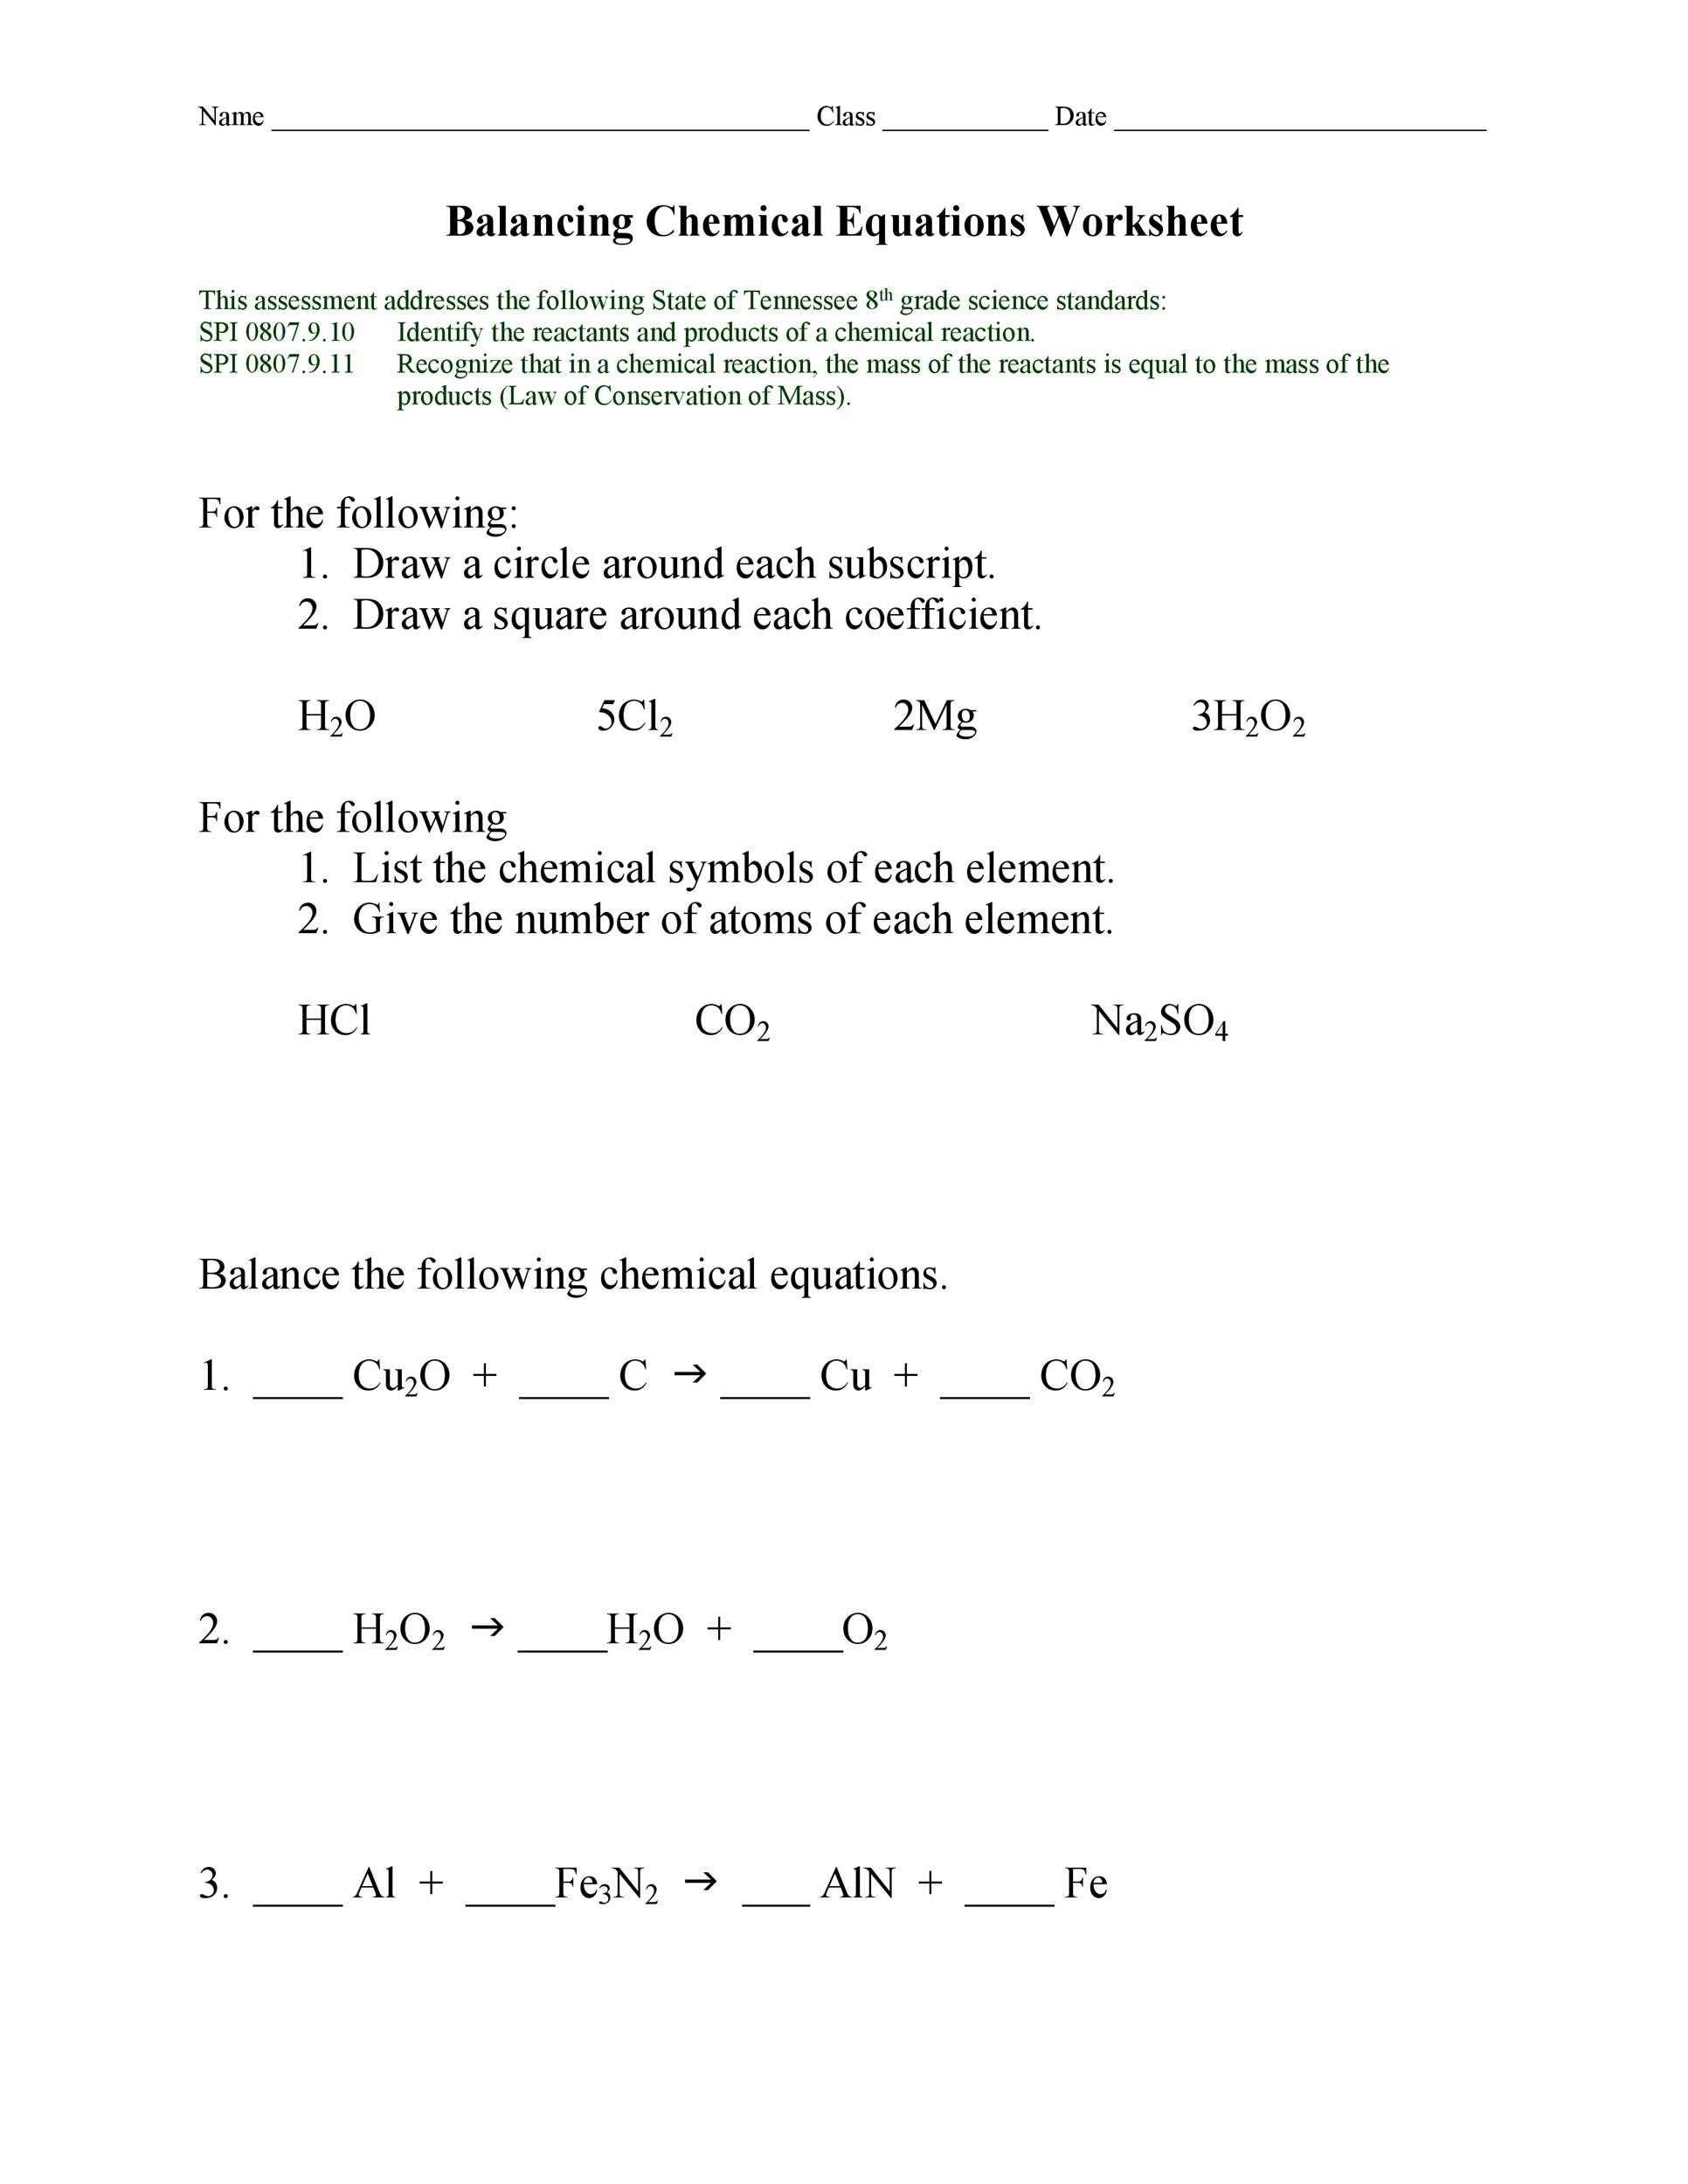 Balancing Chemical Equations Worksheet For Beginners